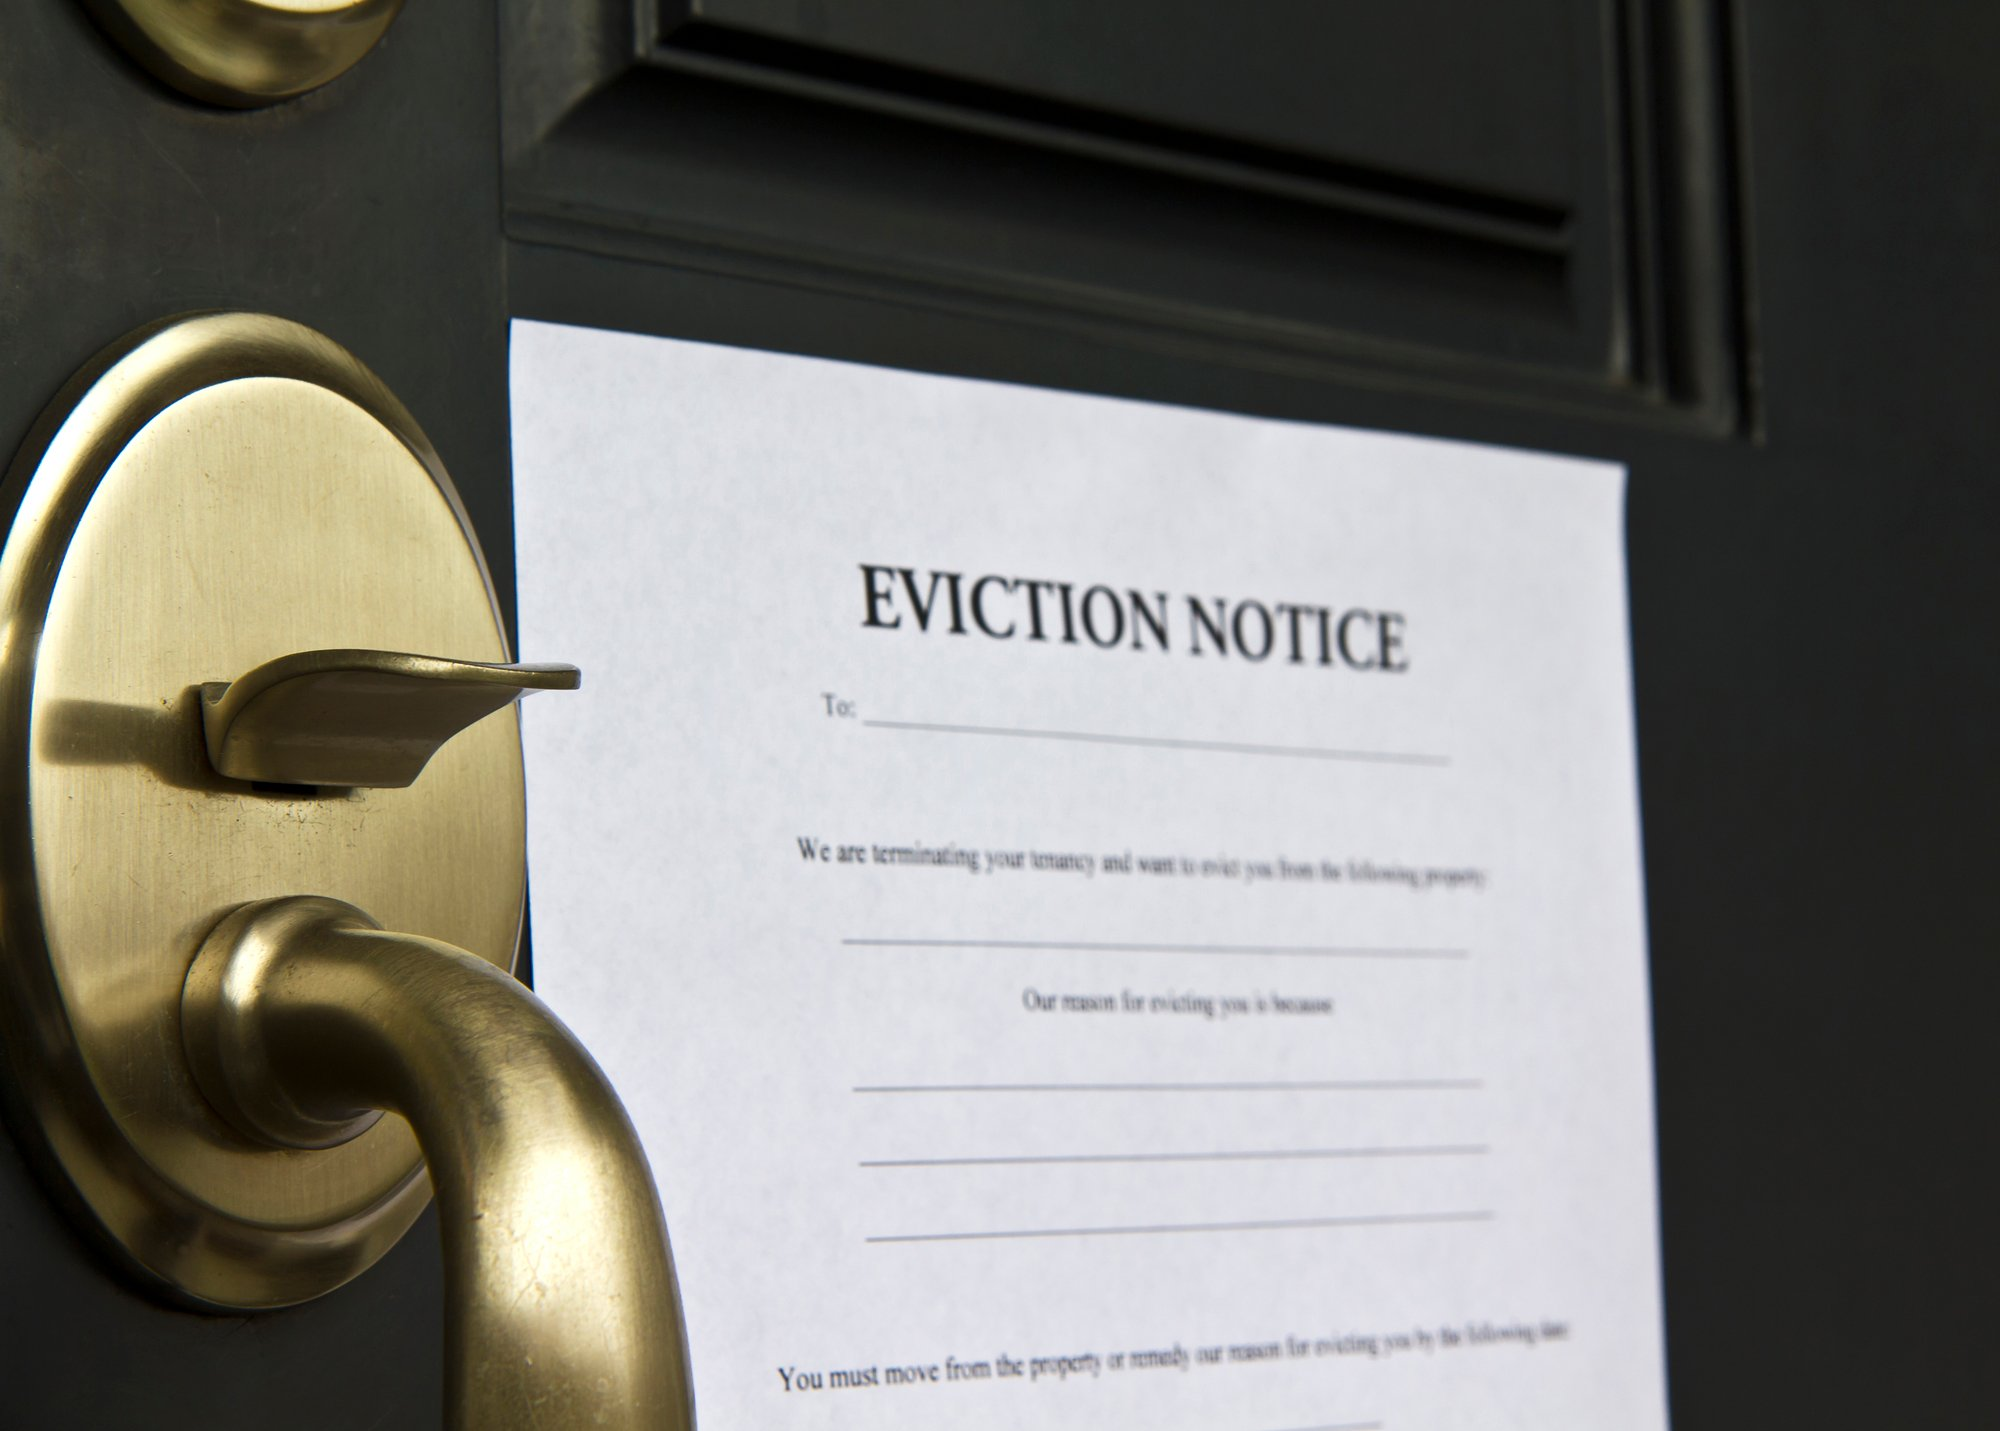 eviction notice posted on door